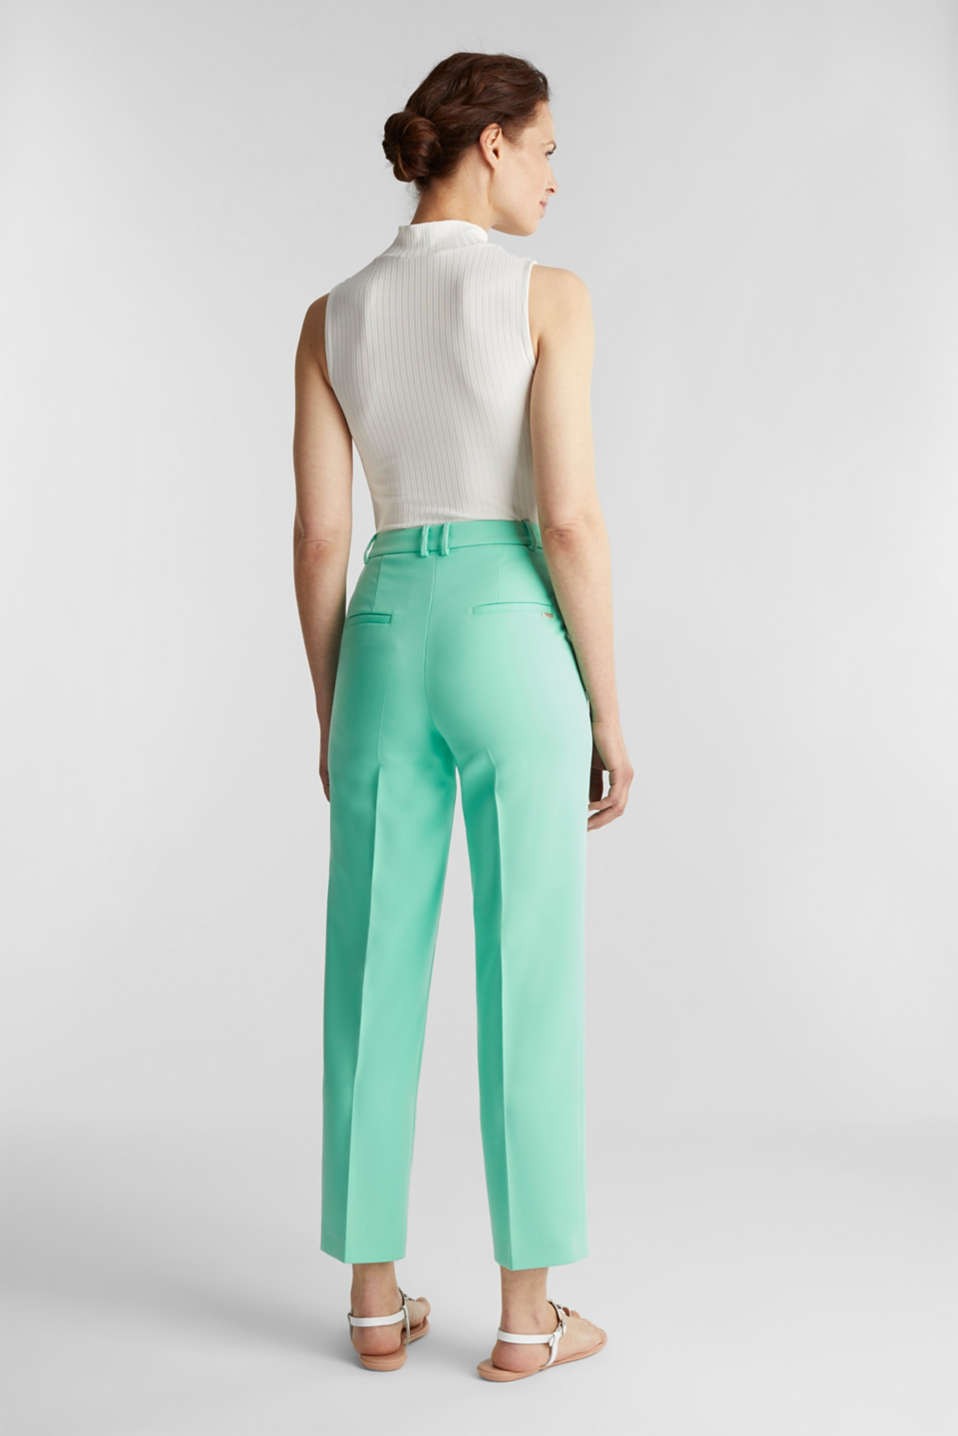 SHIMMER mix + match stretch trousers, LIGHT GREEN, detail image number 3